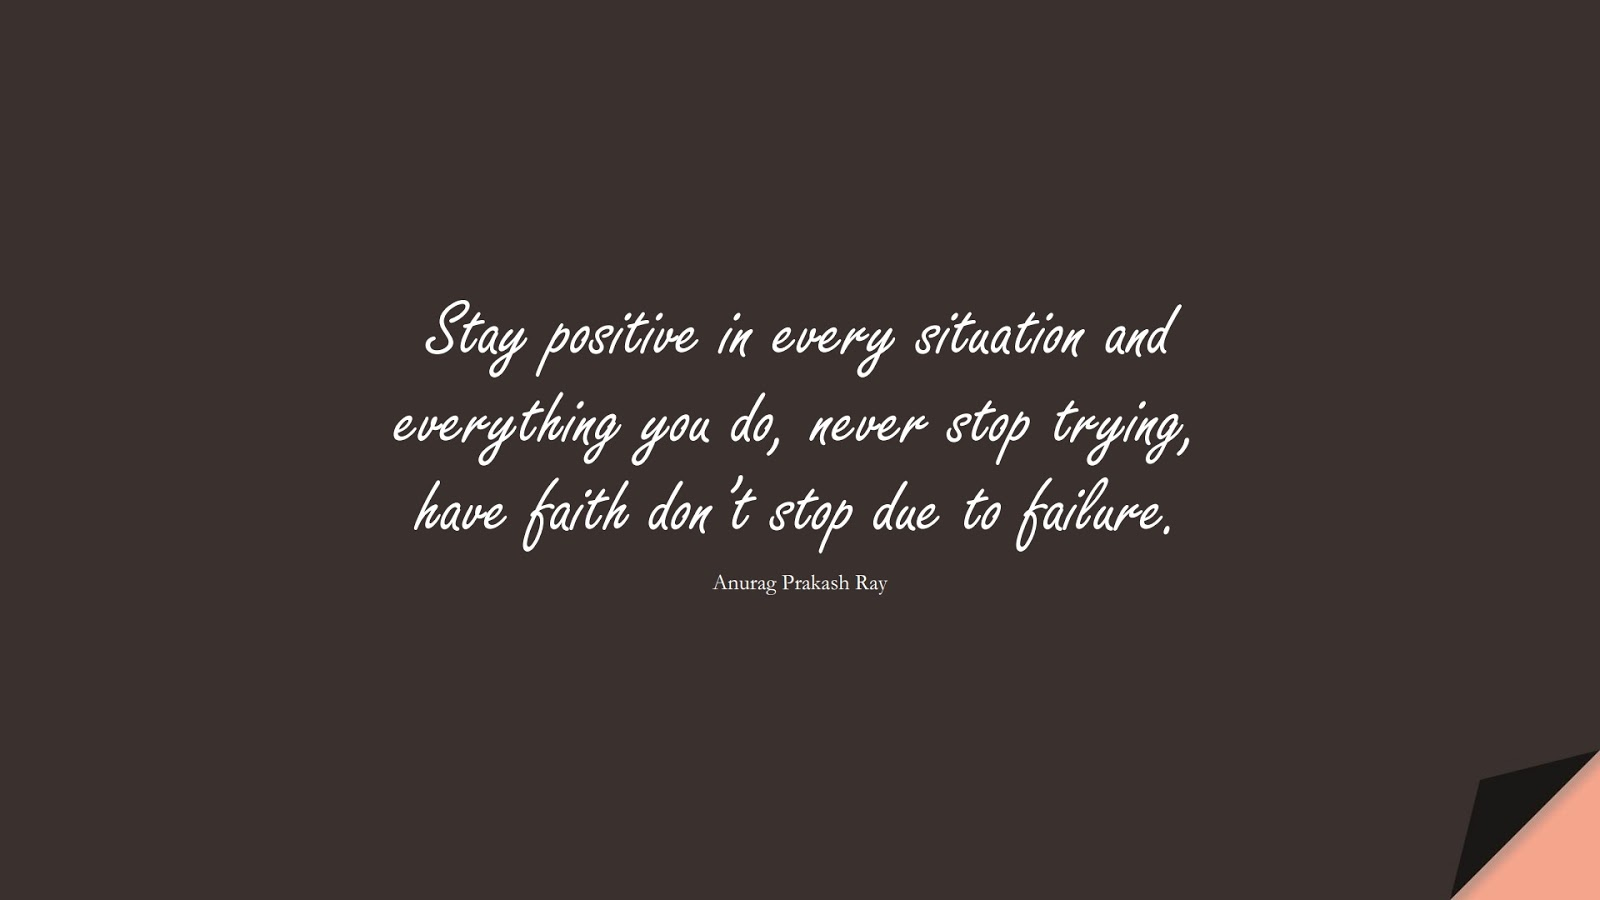 Stay positive in every situation and everything you do, never stop trying, have faith don't stop due to failure. (Anurag Prakash Ray);  #PositiveQuotes